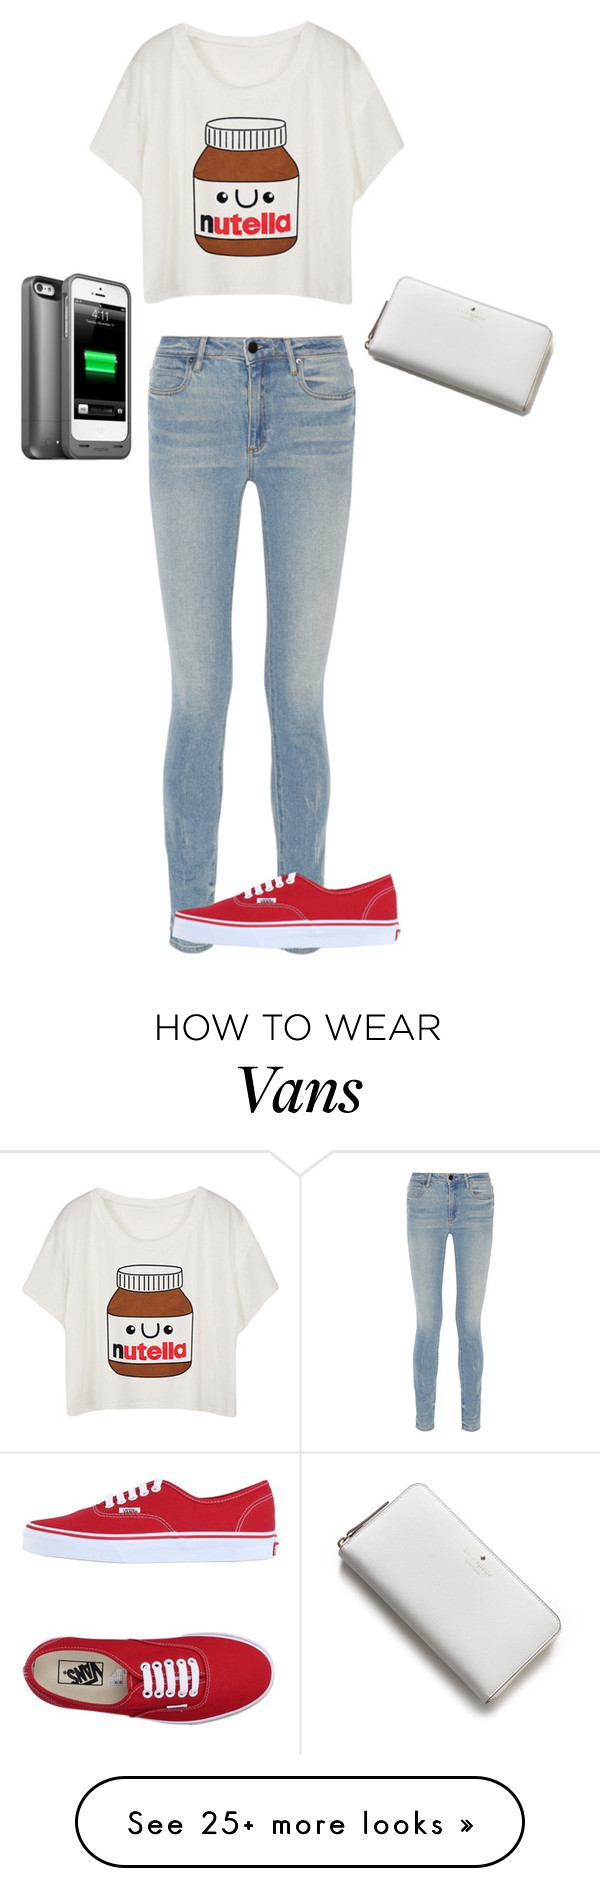 """""""Nutella"""" by summerloveforever335 on Polyvore featuring Alexander Wang, Vans, Kate Spade and Mophie"""